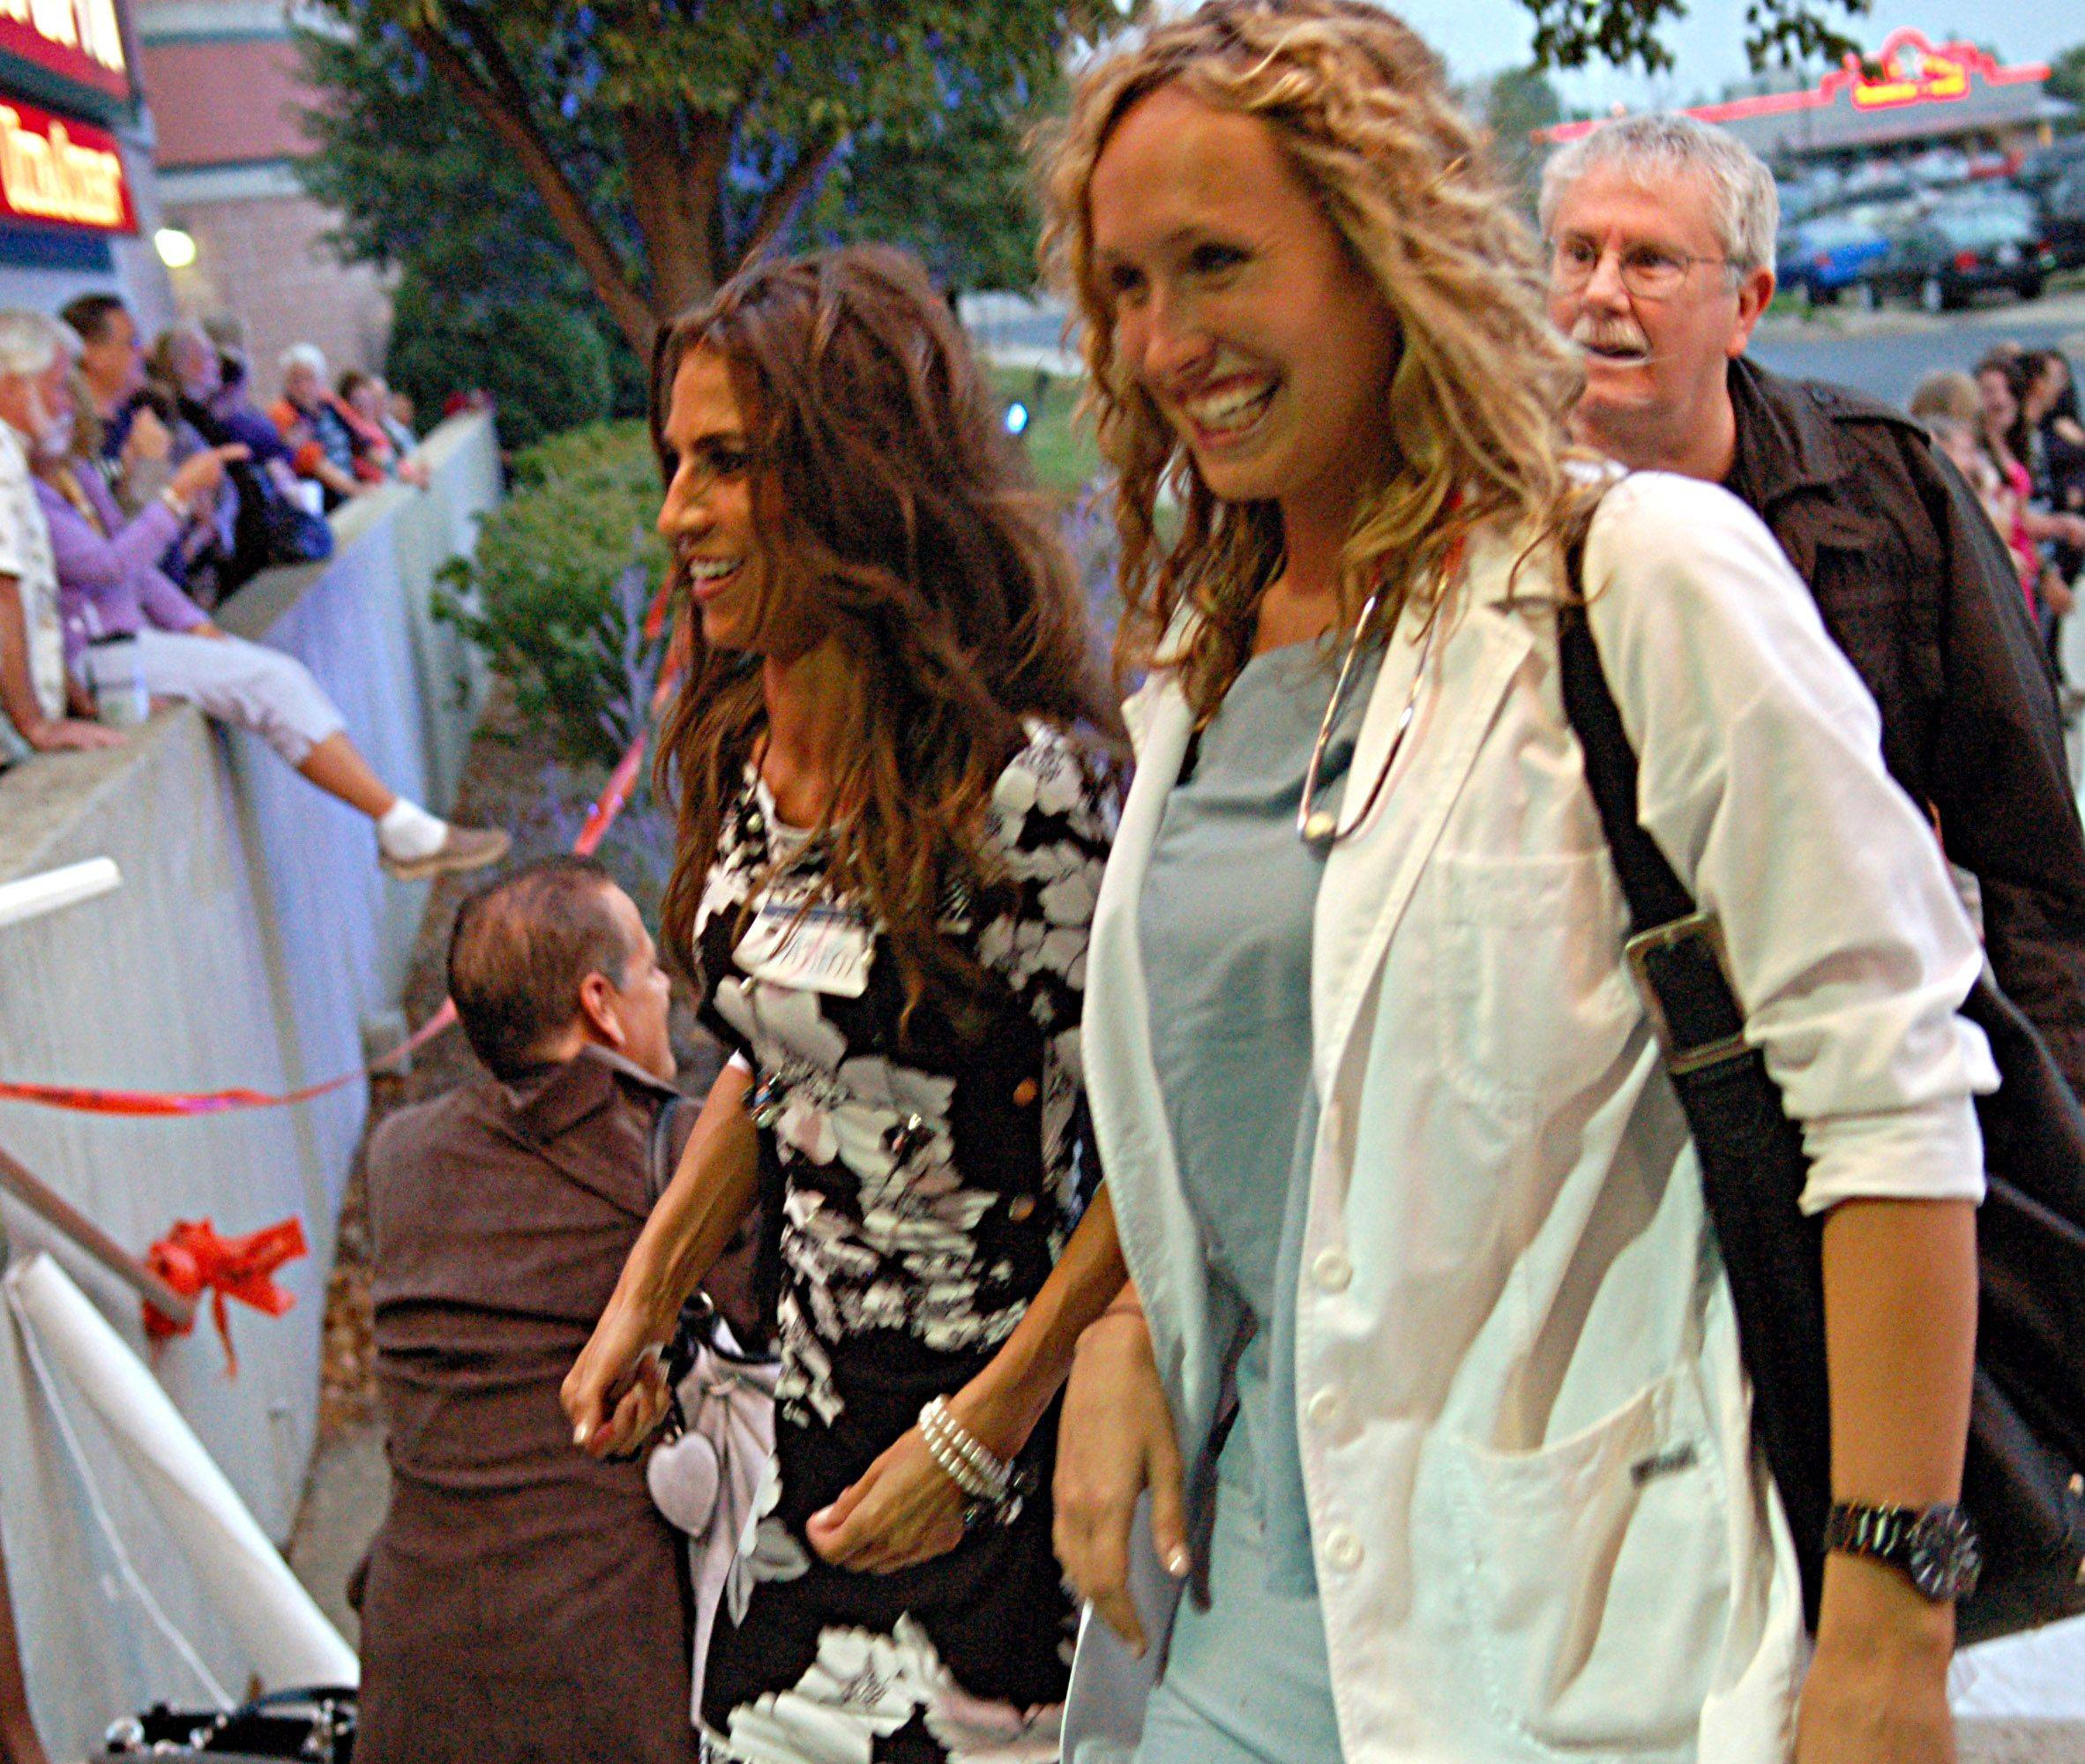 Natalie Simpson of Huntley, left, and Elizabeth Steffen of Crystal Lake walked up the white carpet Friday during the movie premiere for �Contagion� at Elgin Marcus Fox Theatre. Both were extras during filming at Sherman Hospital in Elgin.